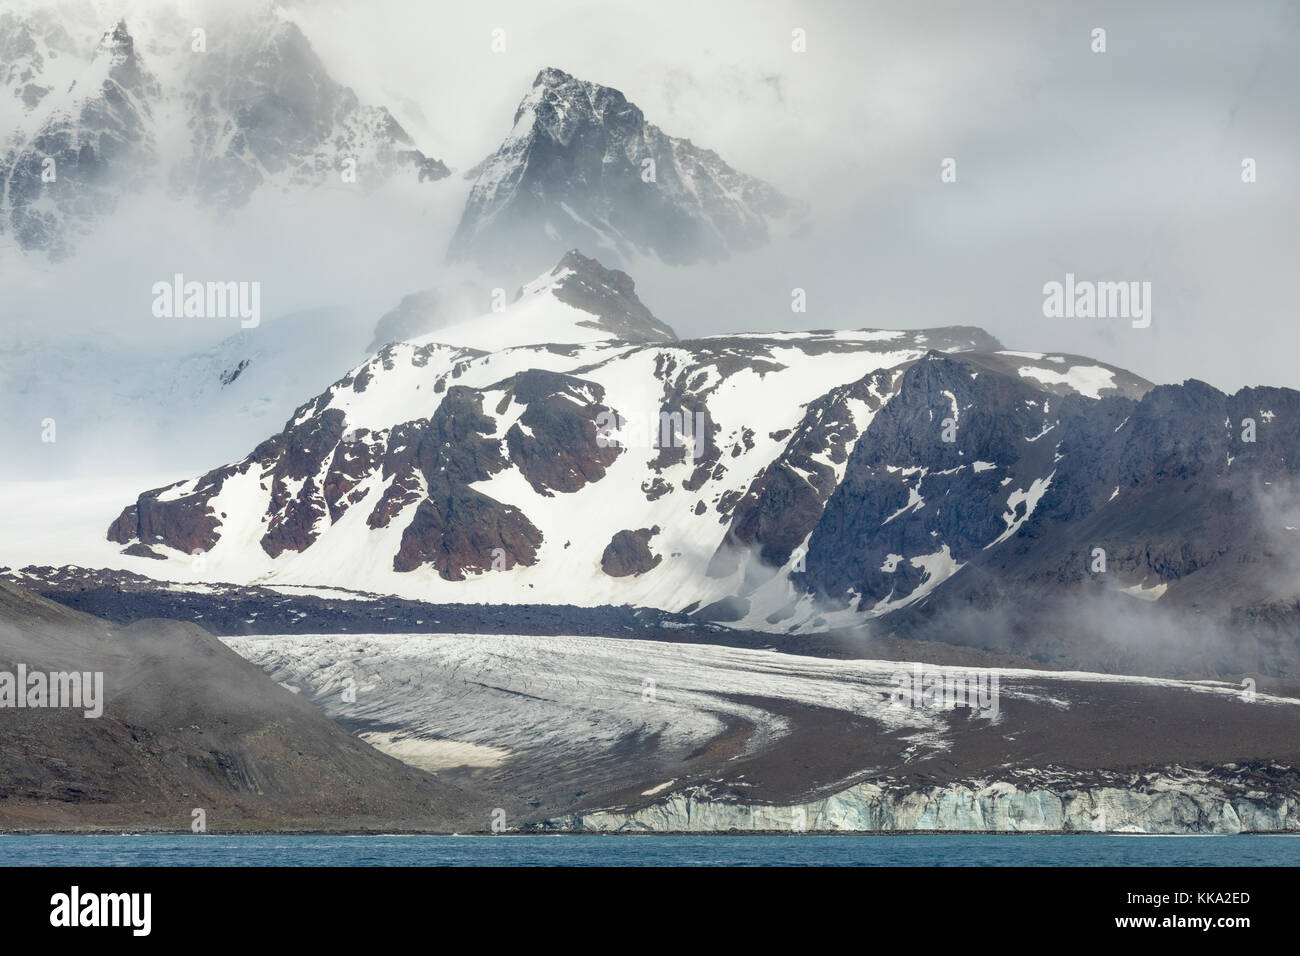 Snow-capped mountains and glacier at St Andrew's Bay, South Georgia Island - Stock Image